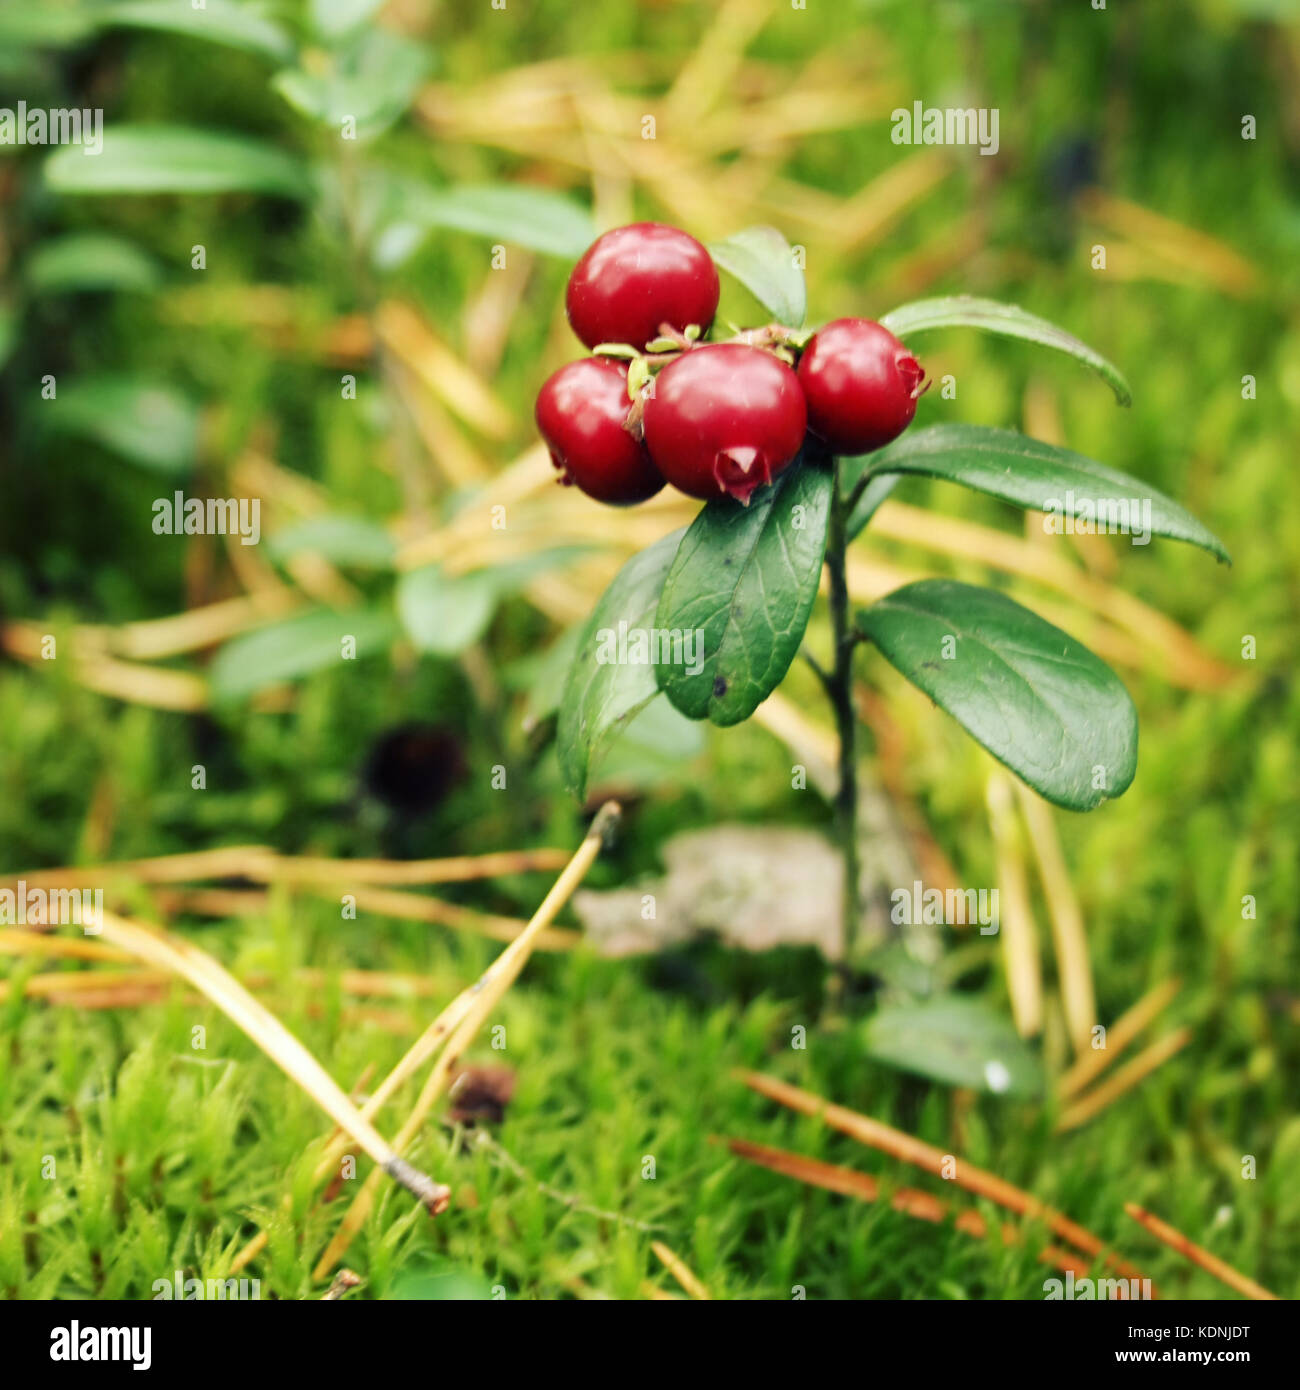 Wild nature. Cowberry in the forest. Macro. Deep red Lingonberry in the wild. Organic food. Autumn photo. Toned Stock Photo